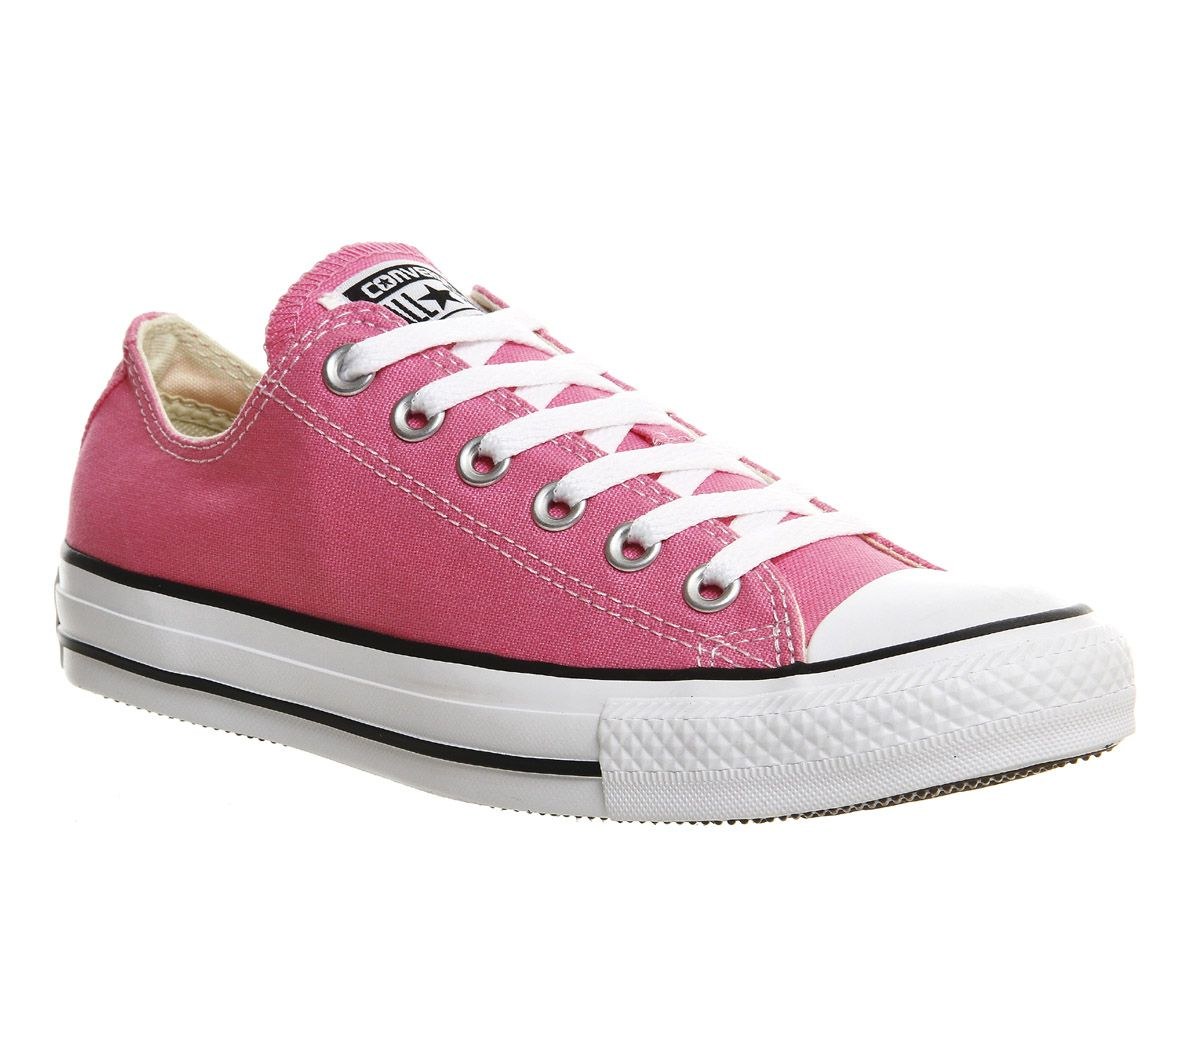 78e43bb19170 Converse All Star Low Pink Canvas - Hers trainers